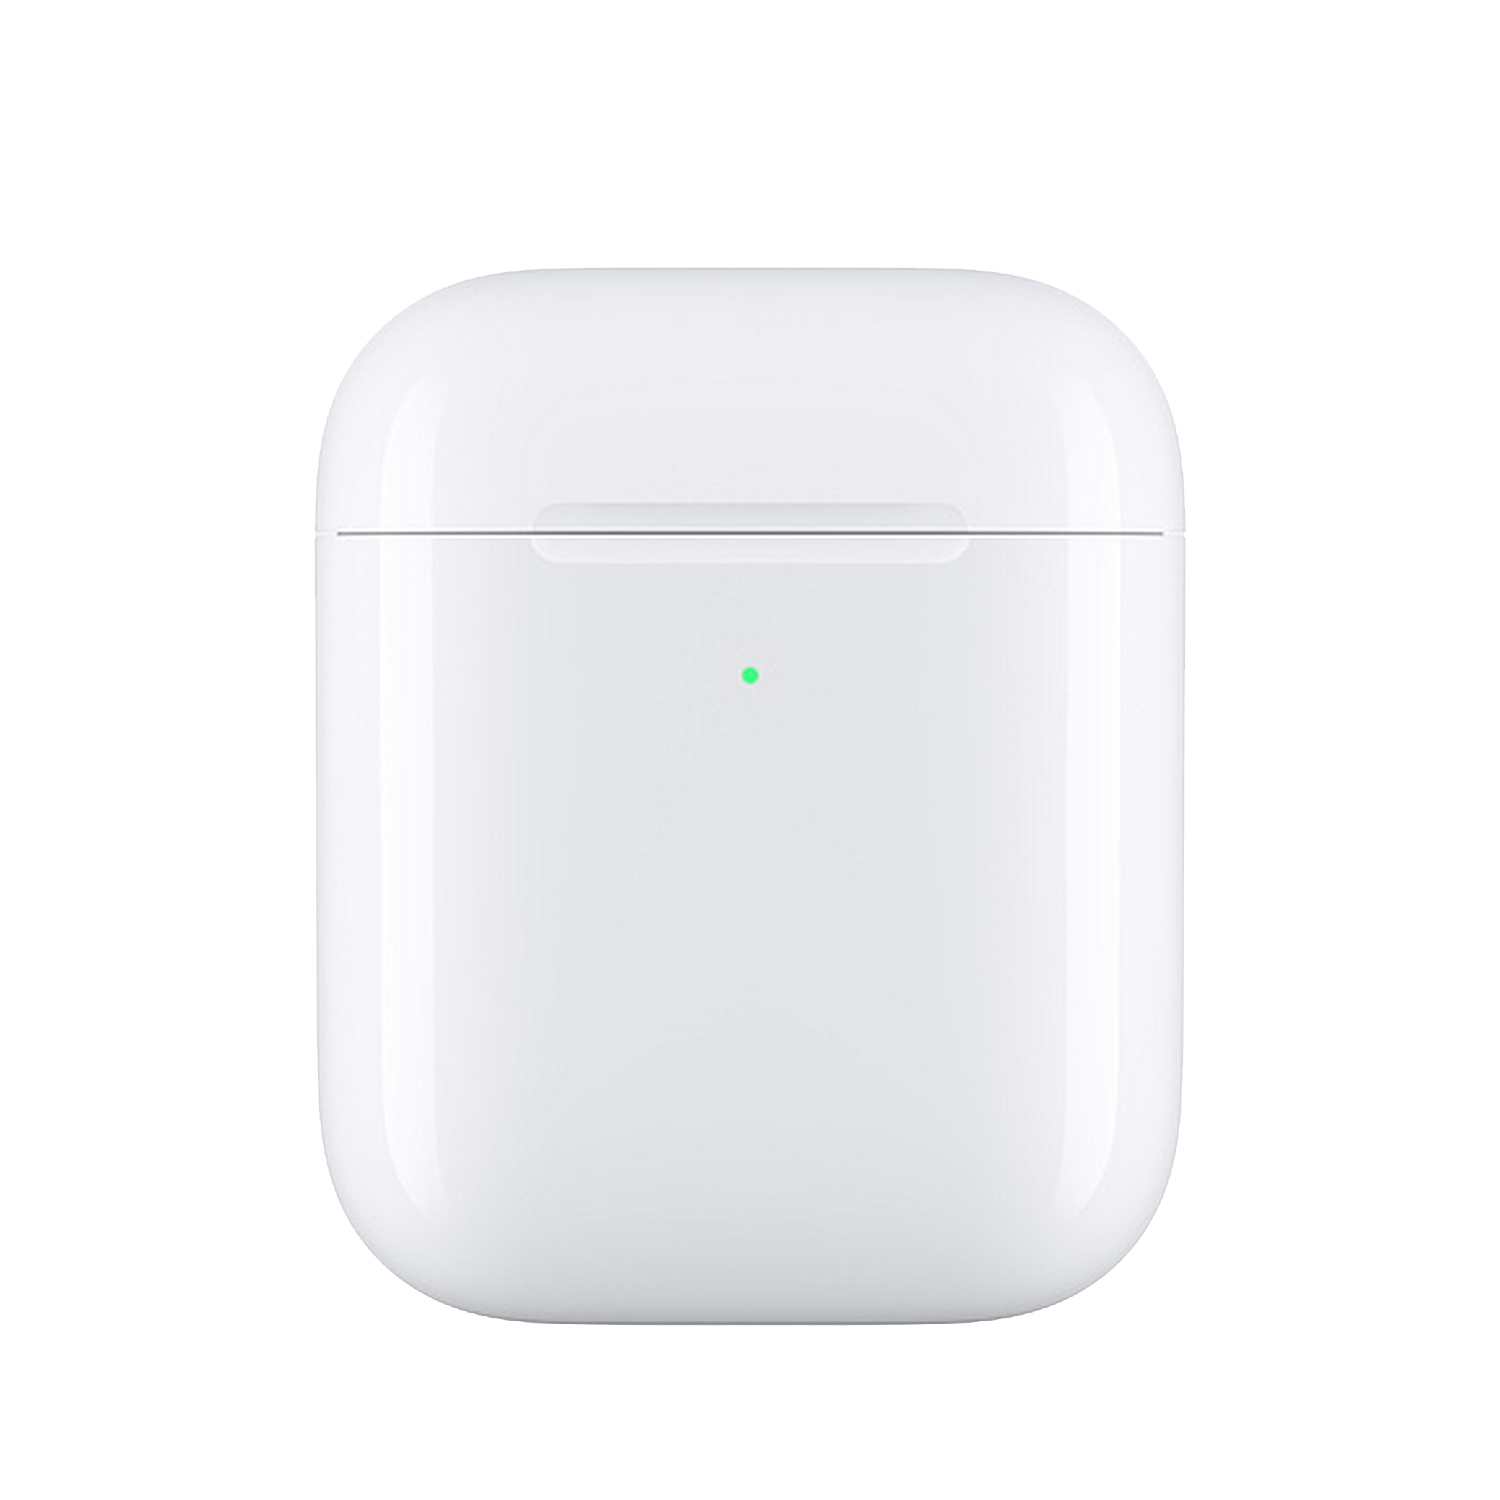 Apple AirPods With Wireless Charging Case Ref MRXJ2ZM/A